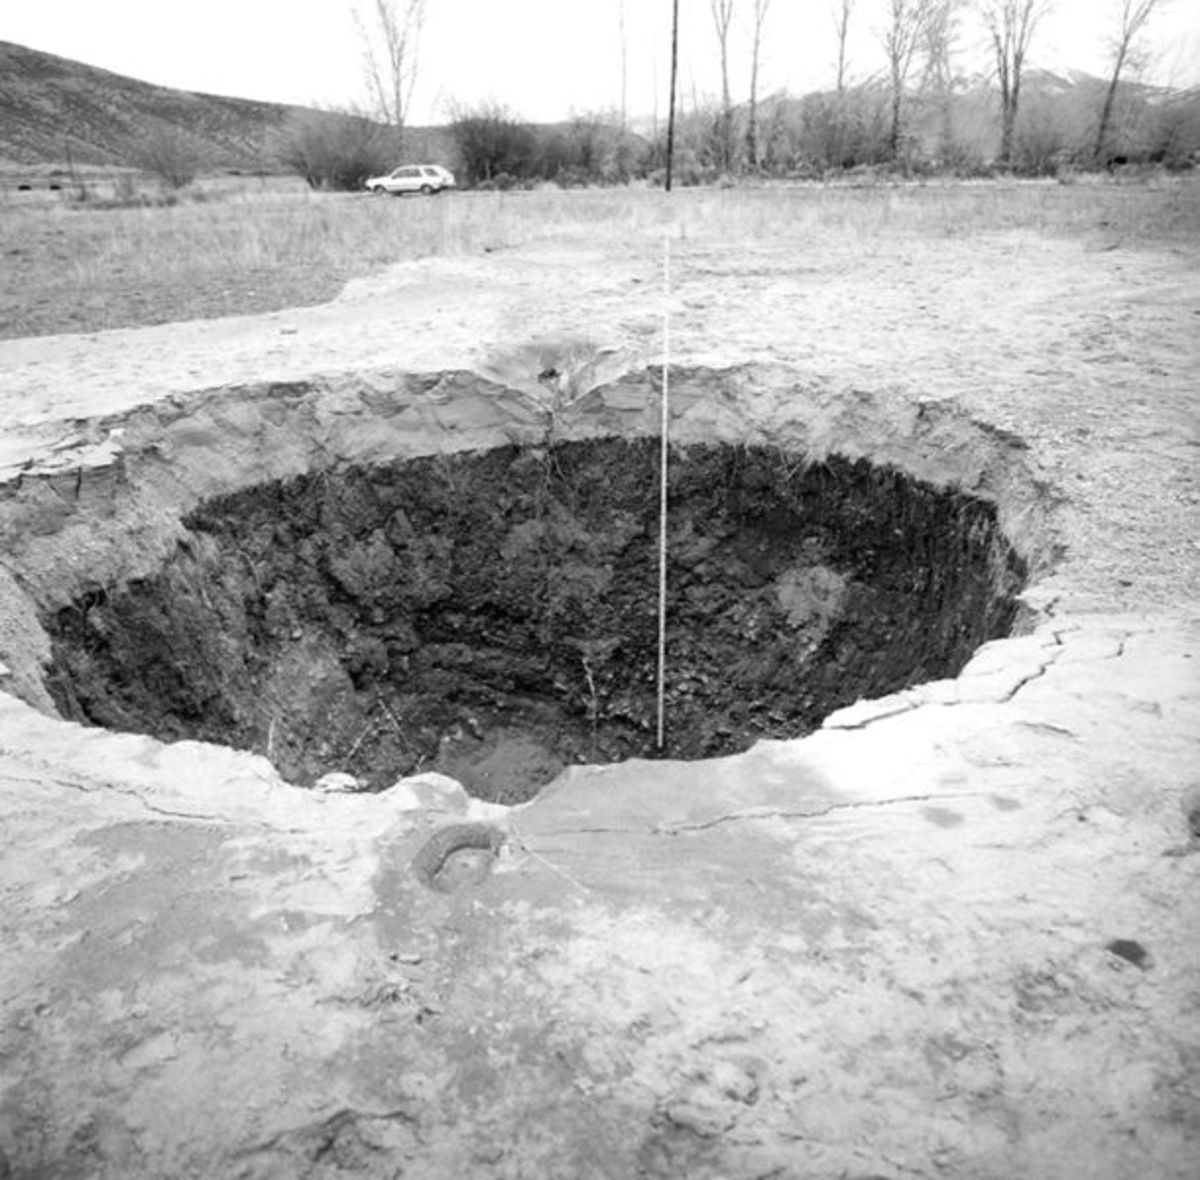 Crater caused by an artesian fountain that flowed during the 1983 Borah Peak earthquake